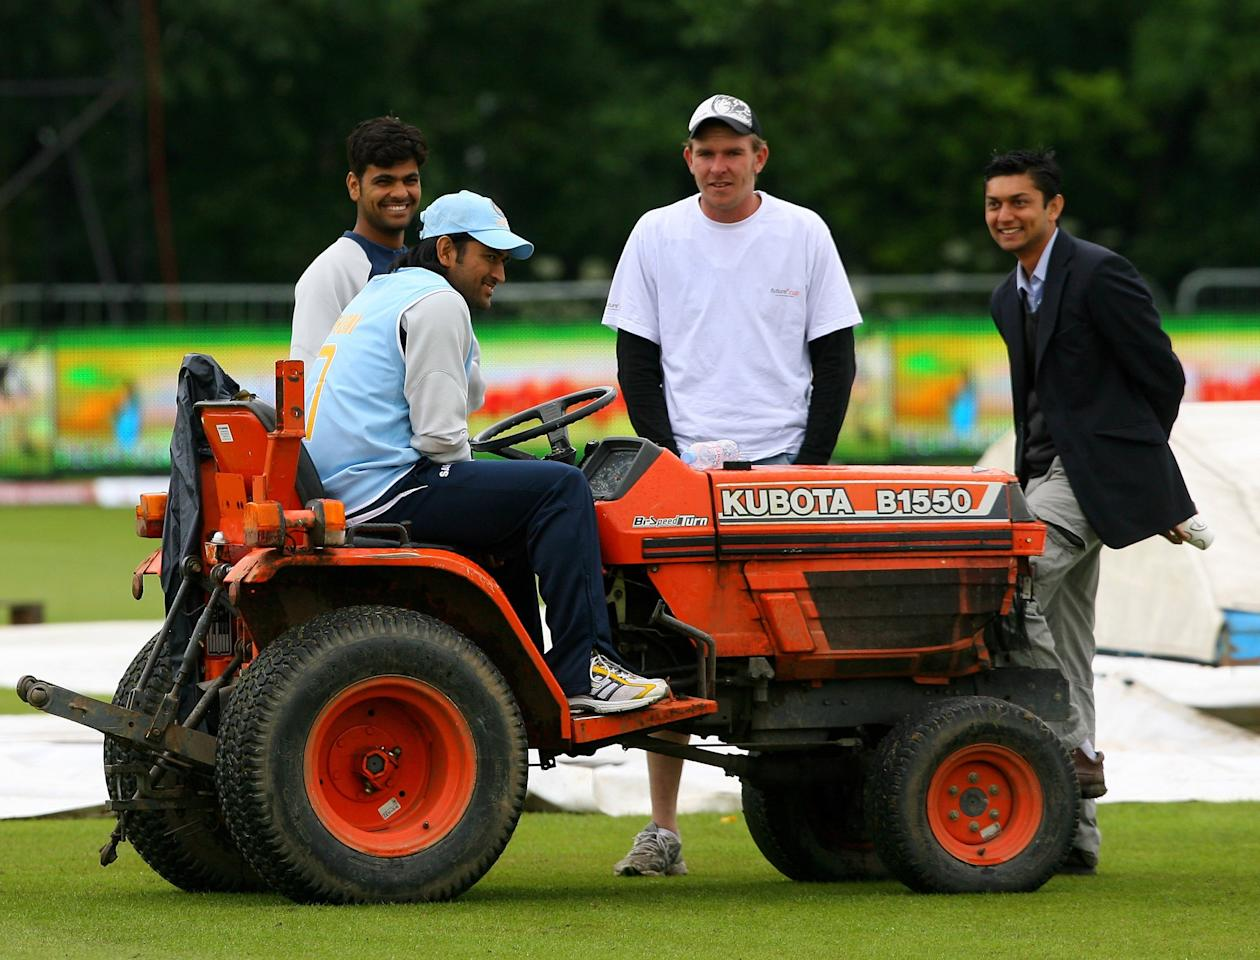 BELFAST, UNITED KINGDOM - JULY 01: Indian player Mahendra Singh Dhoni sits on the tractor as the players await the start of the delayed 3rd One Day International between India and South Africa at the Civil Service Cricket Club in Belfast,Northern Ireland.  (Photo by Stu Forster/Getty Images)